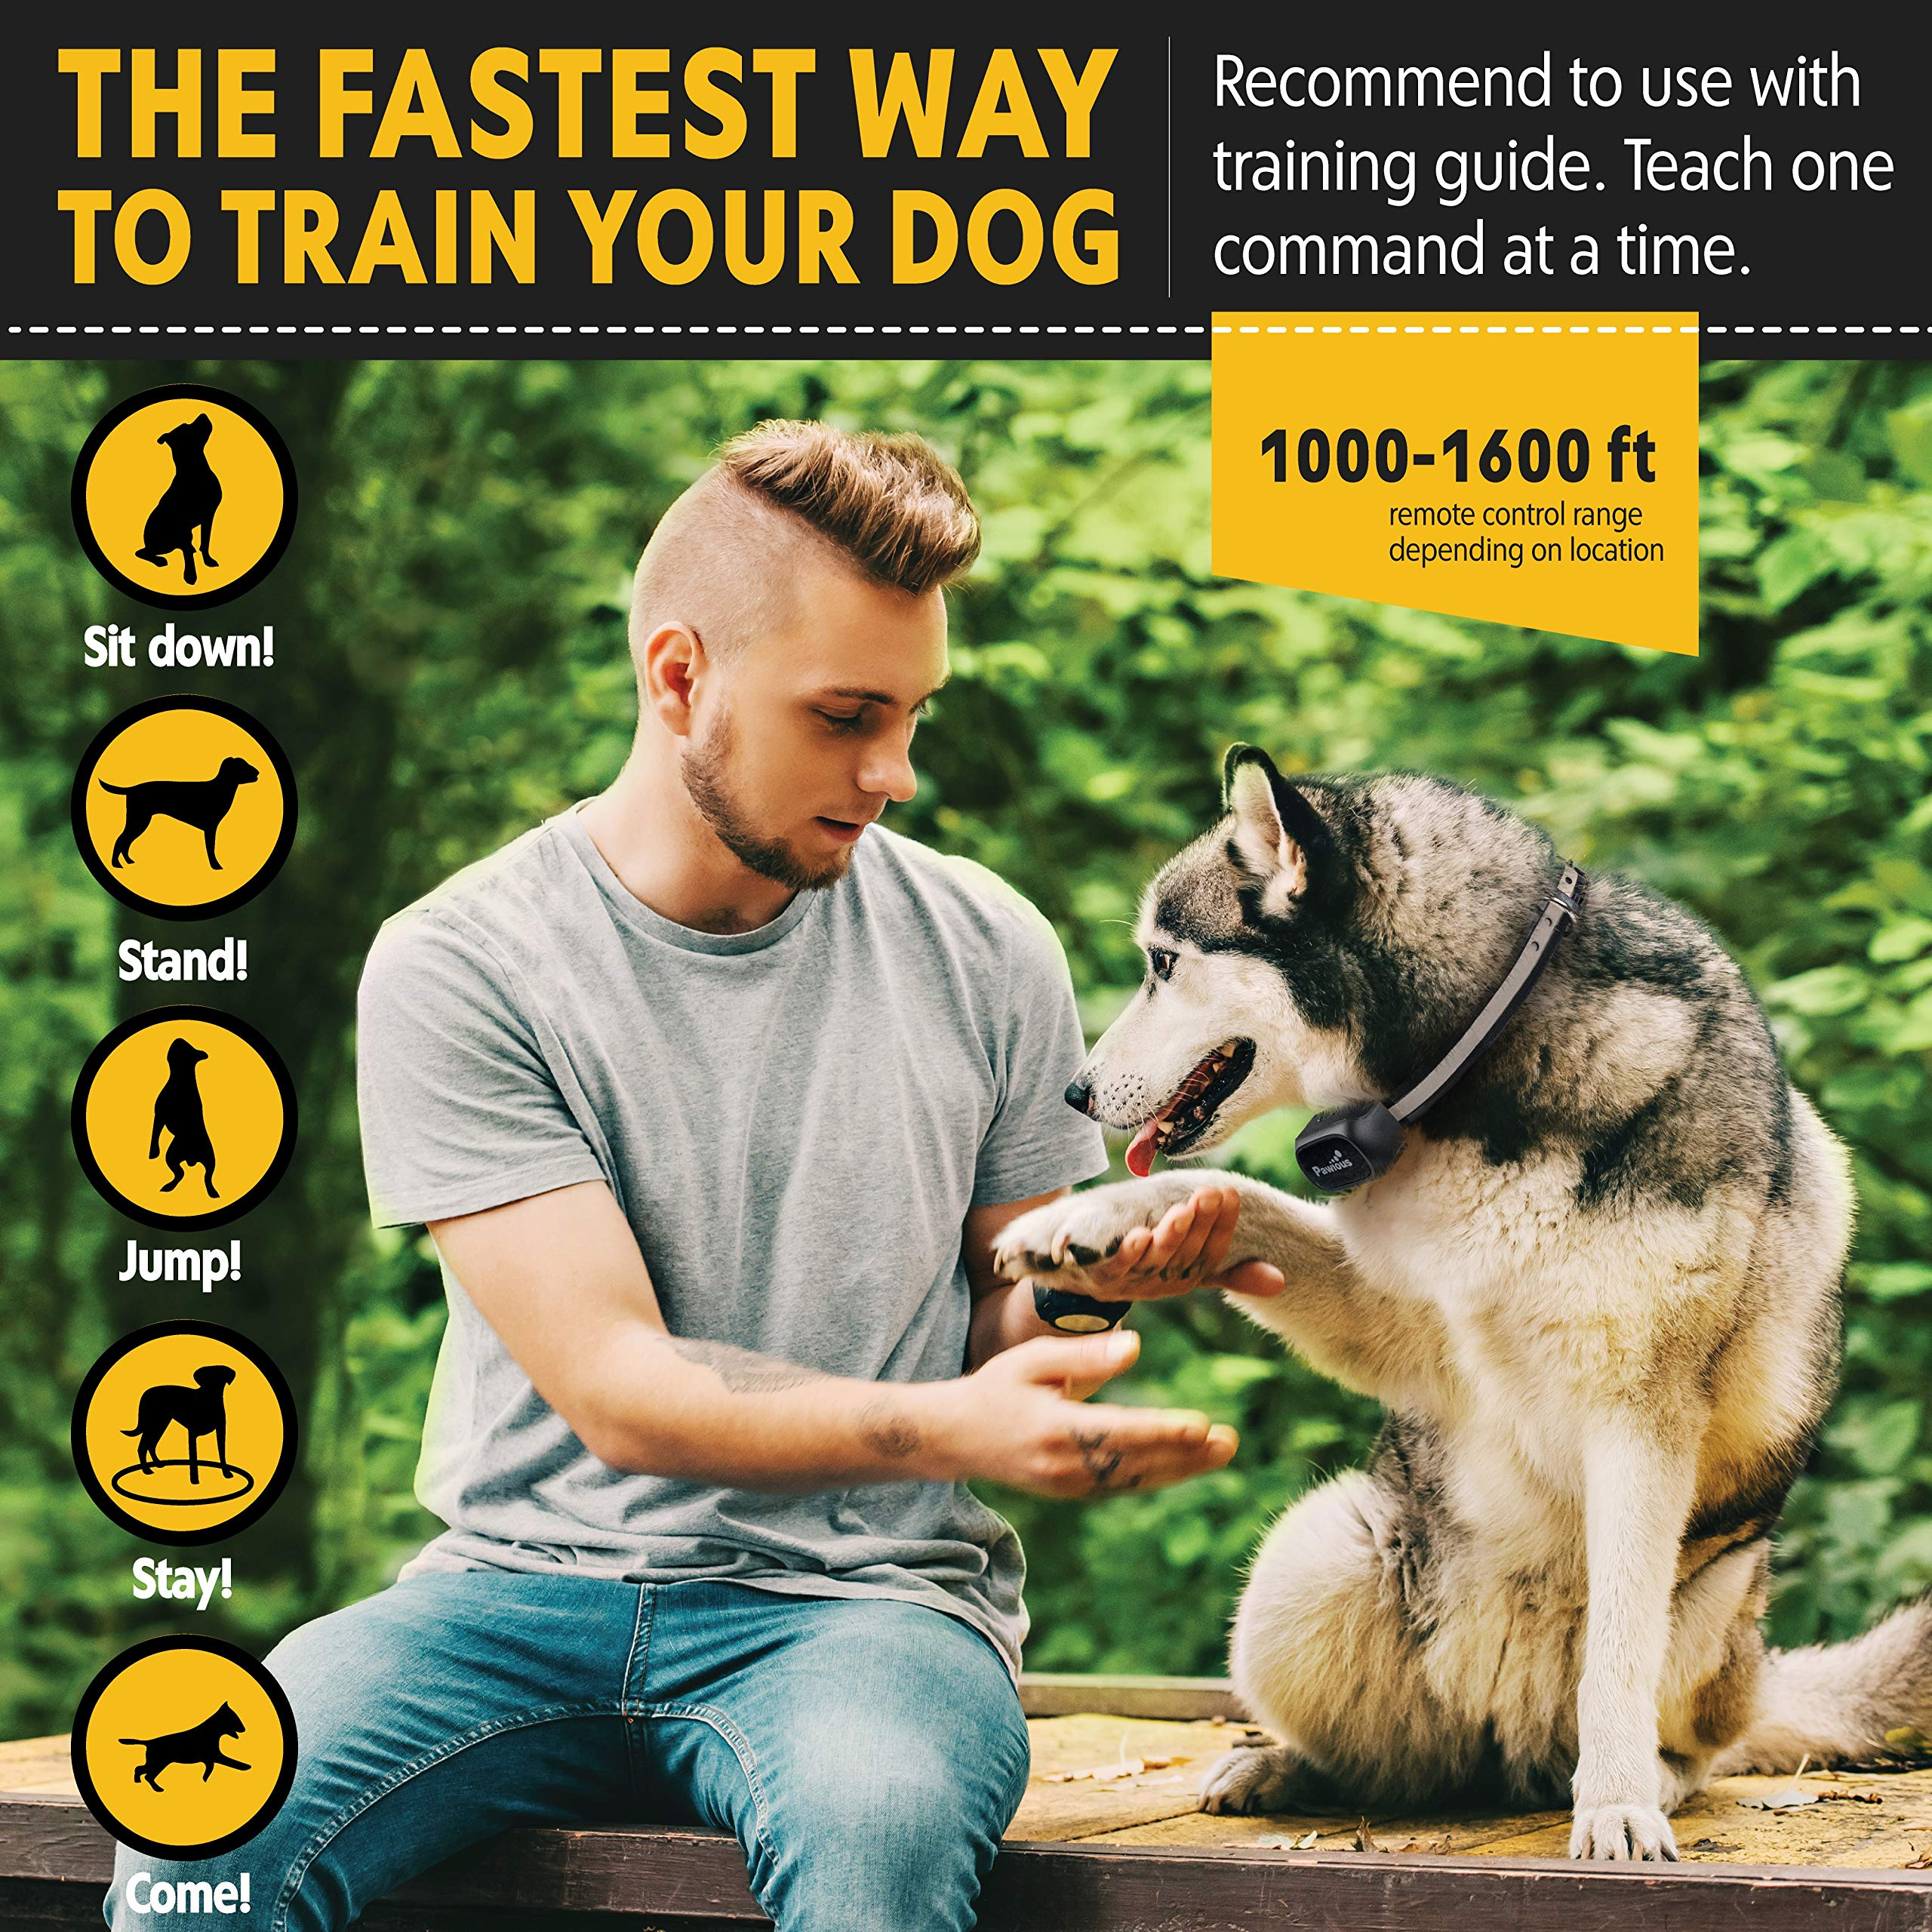 Pawious Dog Training Collar [Newest 2019] - Rechargeable Remote Dog Shock Collar Small Medium Large Dogs - Long Range, Waterproof, Large LED Screen, Beep, Vibration, Shock E-Collar by Pawious (Image #4)